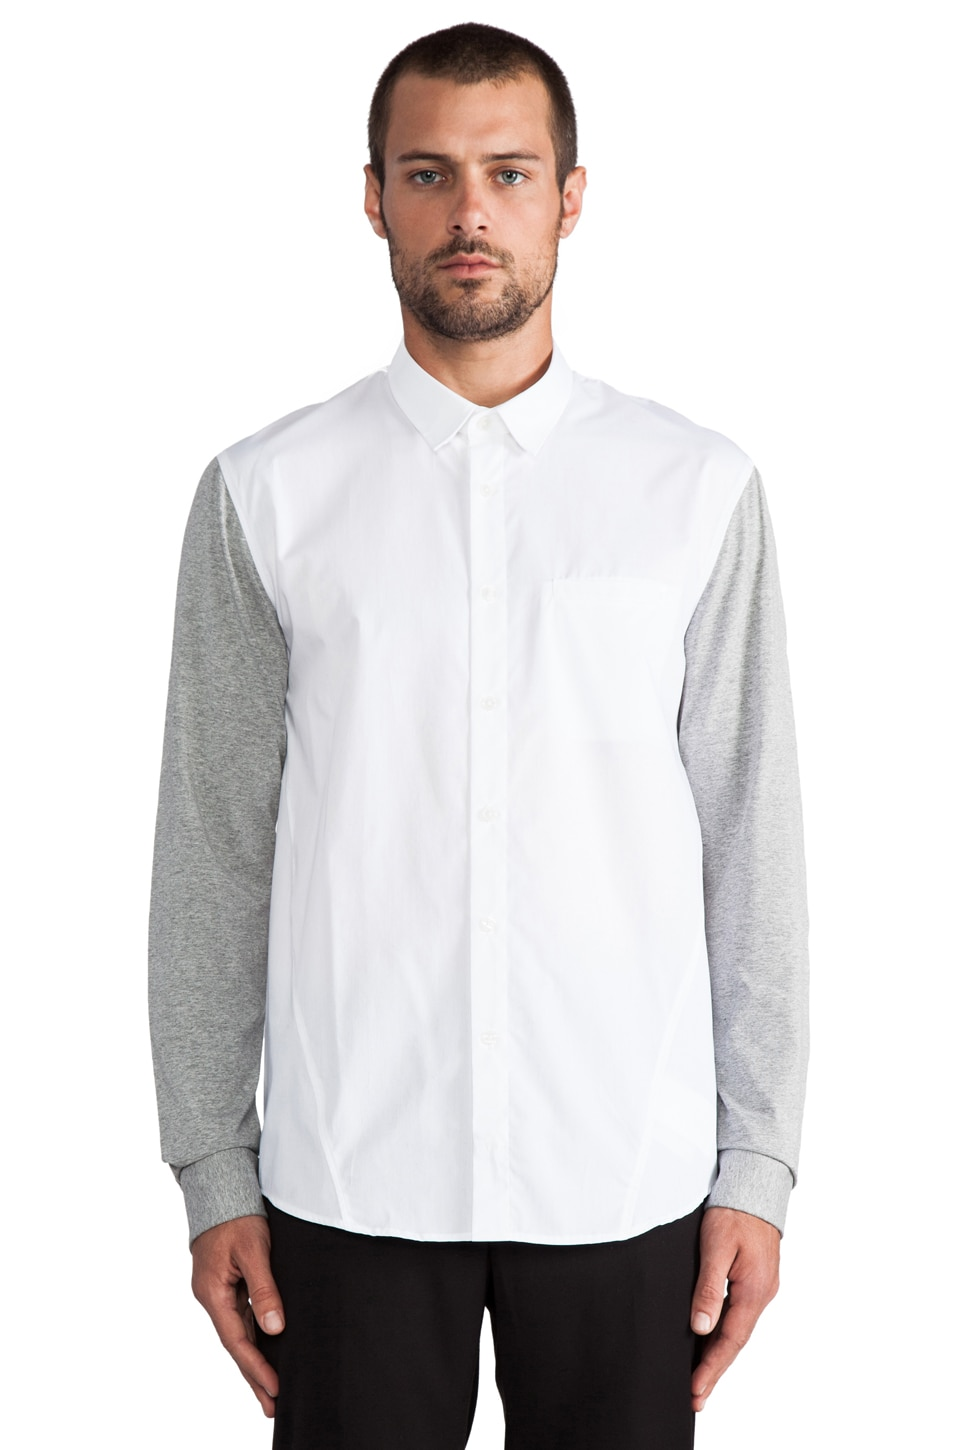 adidas SLVR Jersey Shirt in White